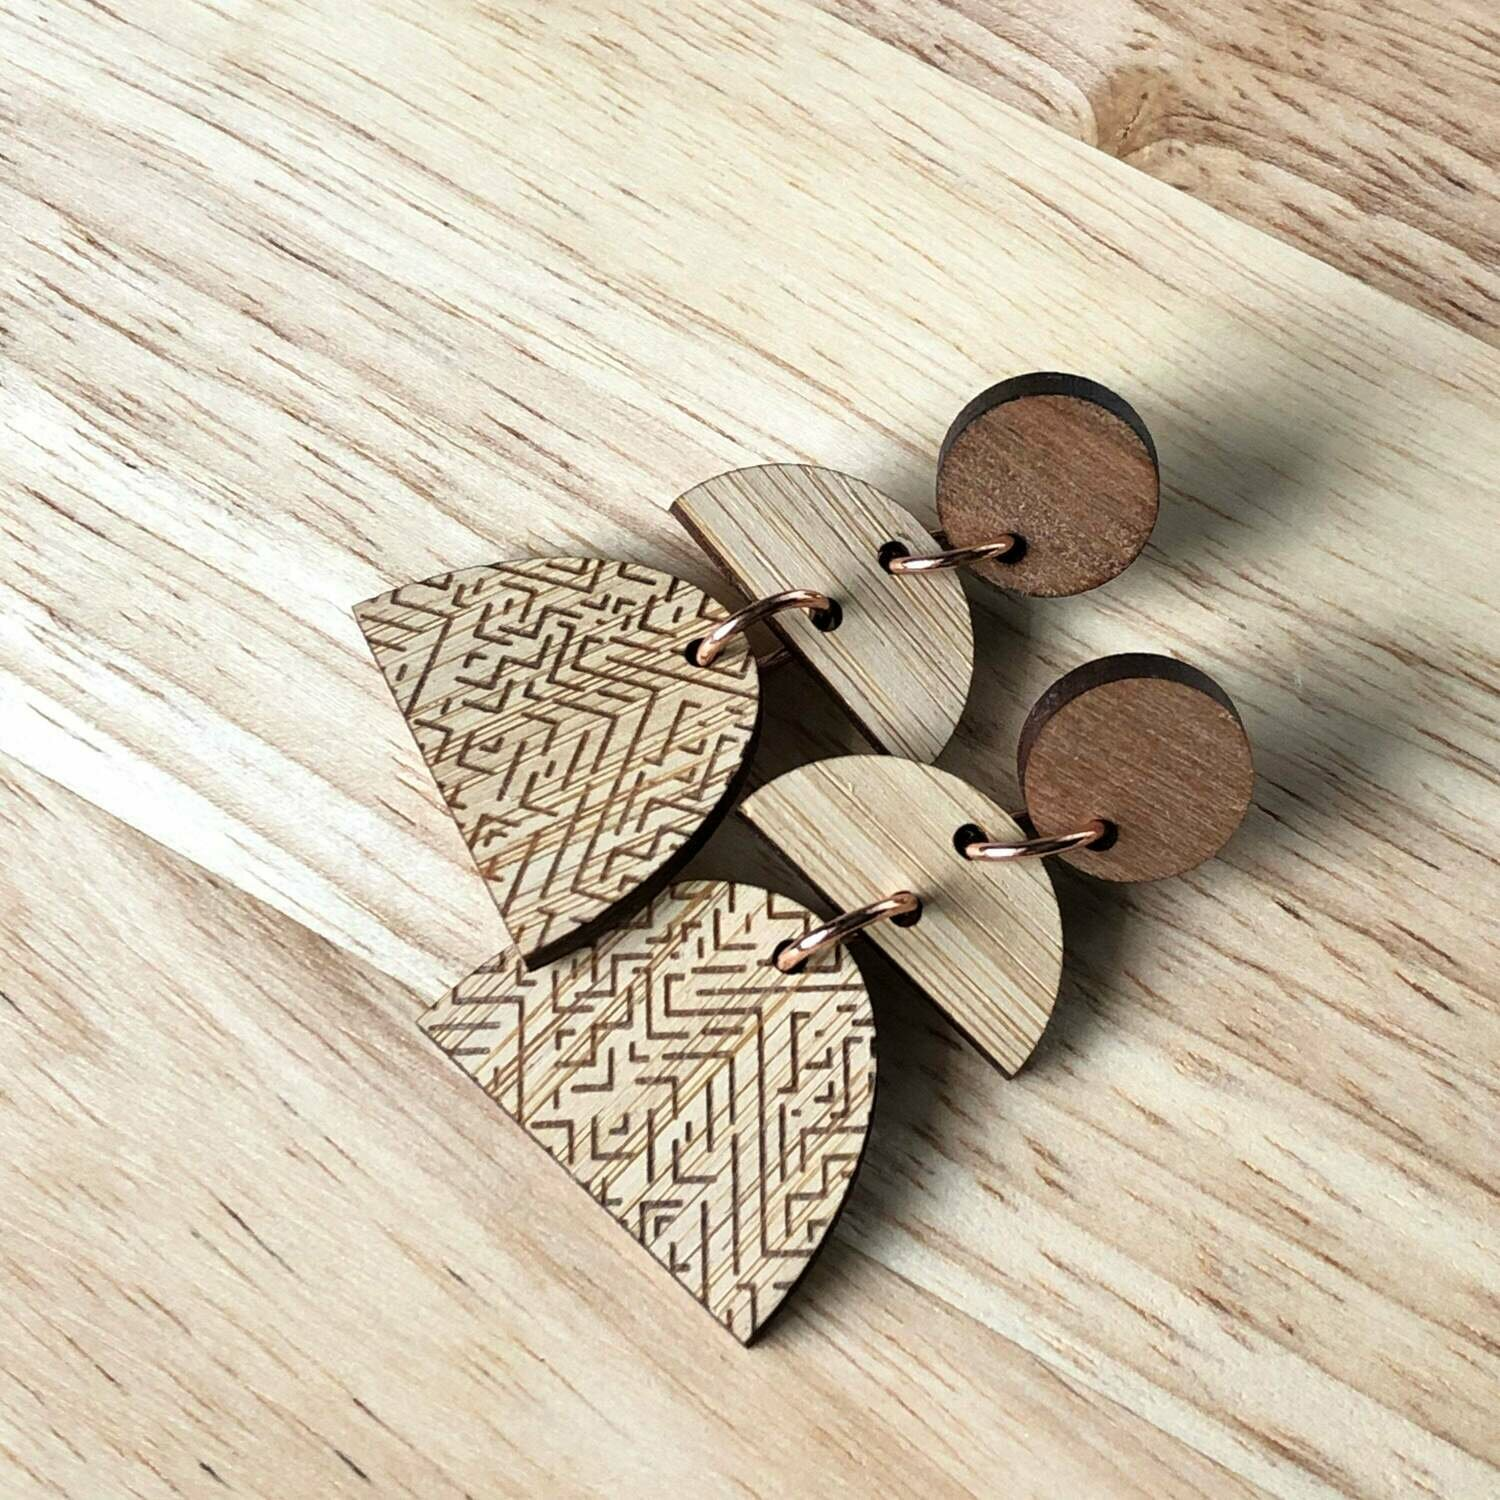 Bamboo earrings | Wooden earrings | Timber earrings | Laser engraved earrings | Eco gift for her | Australian made